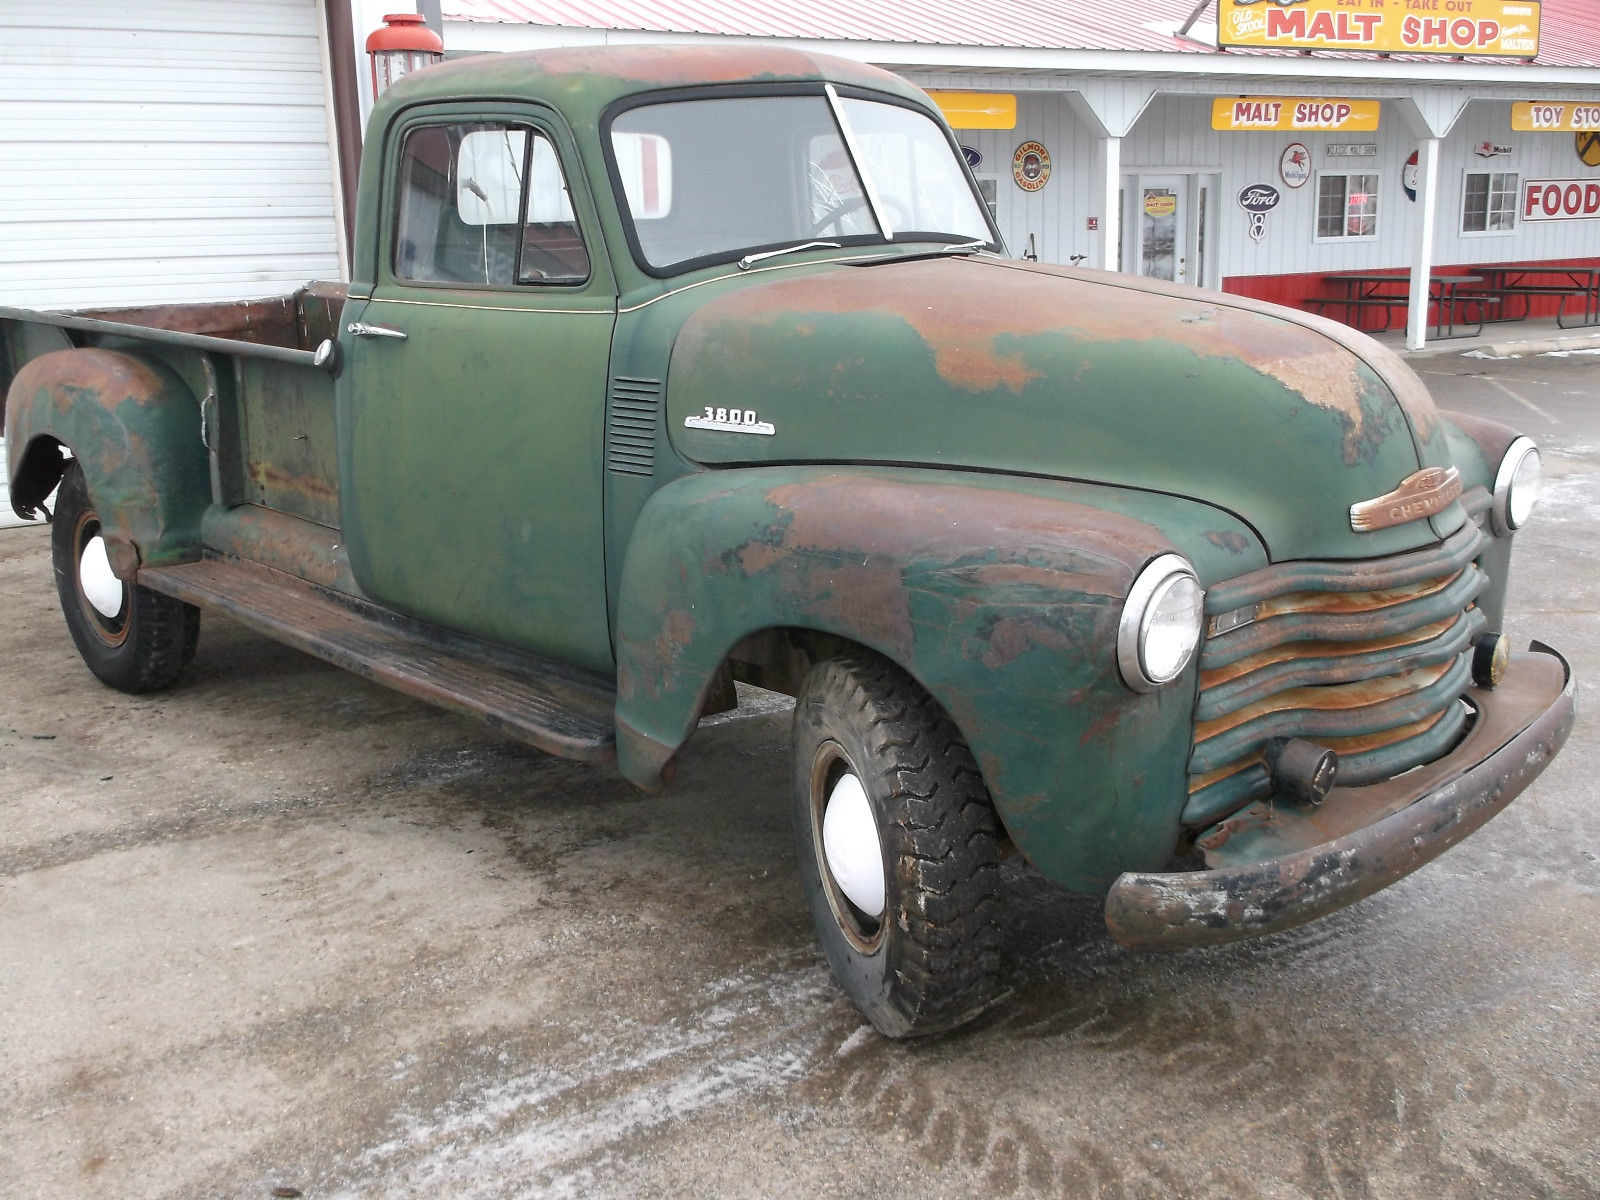 1953 chevy pickup truck 3800 model rare 9 foot box original farm truck rat rod. Black Bedroom Furniture Sets. Home Design Ideas